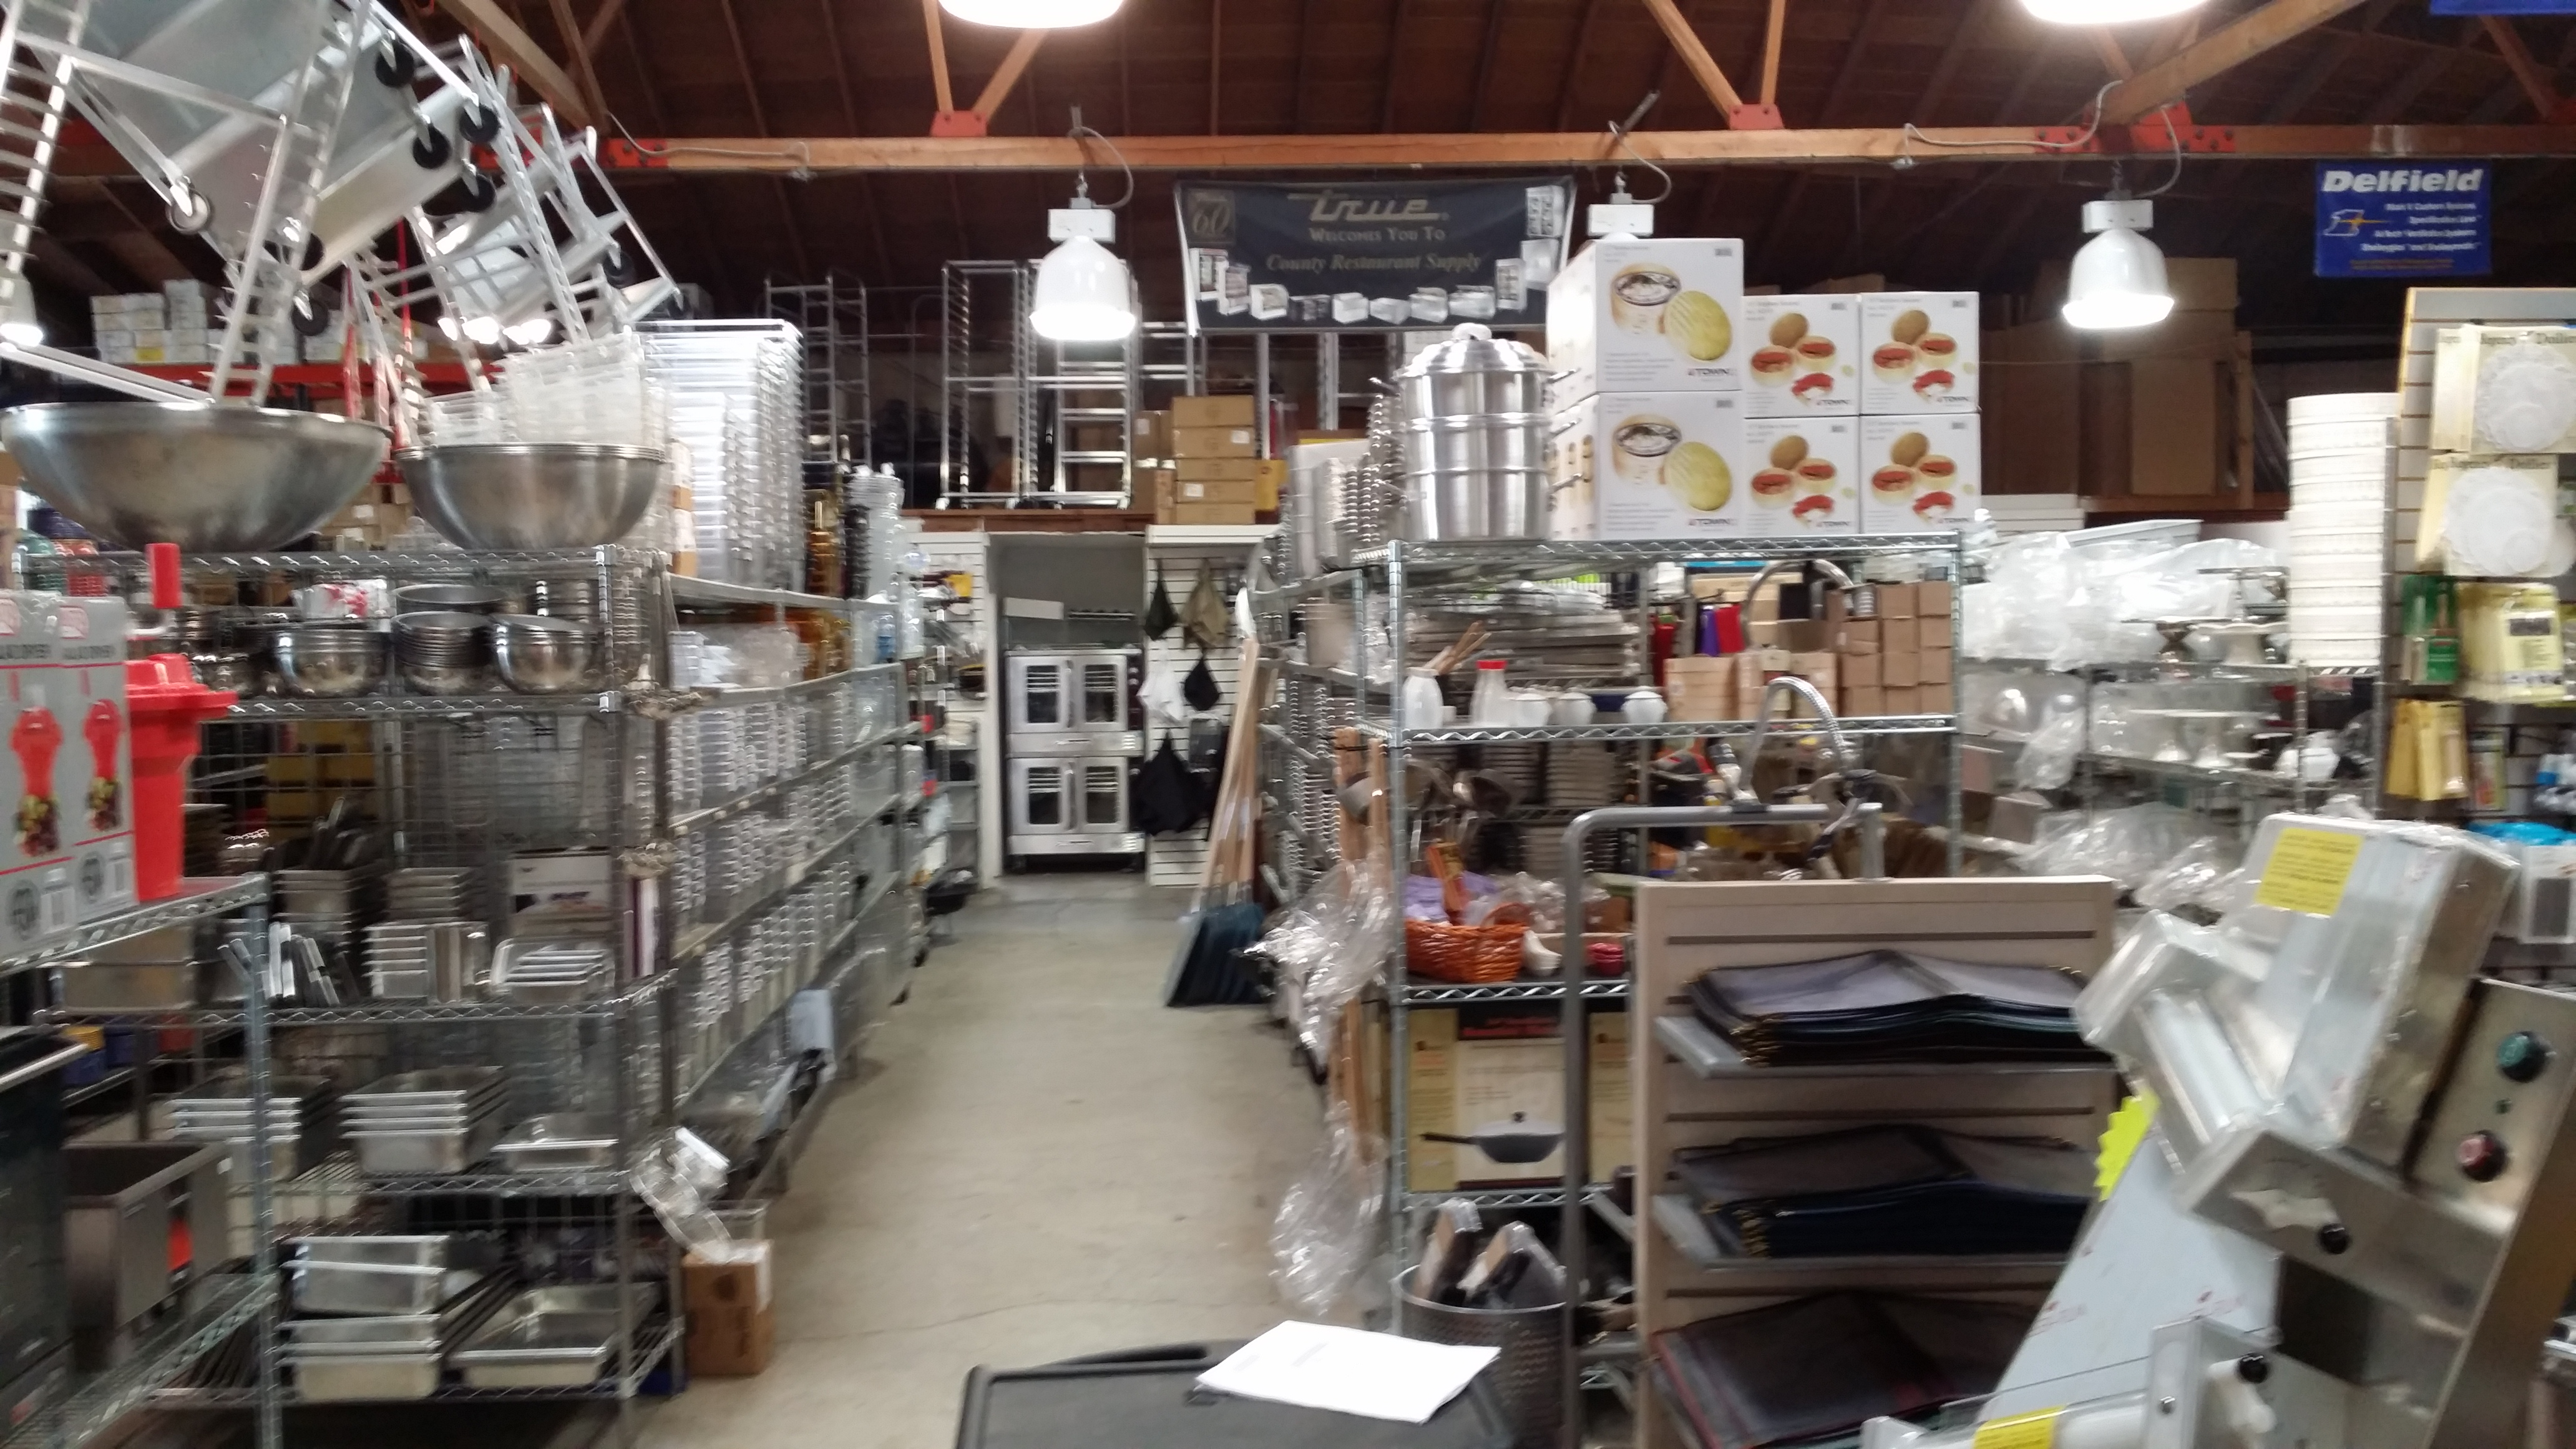 County restaurant supply san carlos california proview